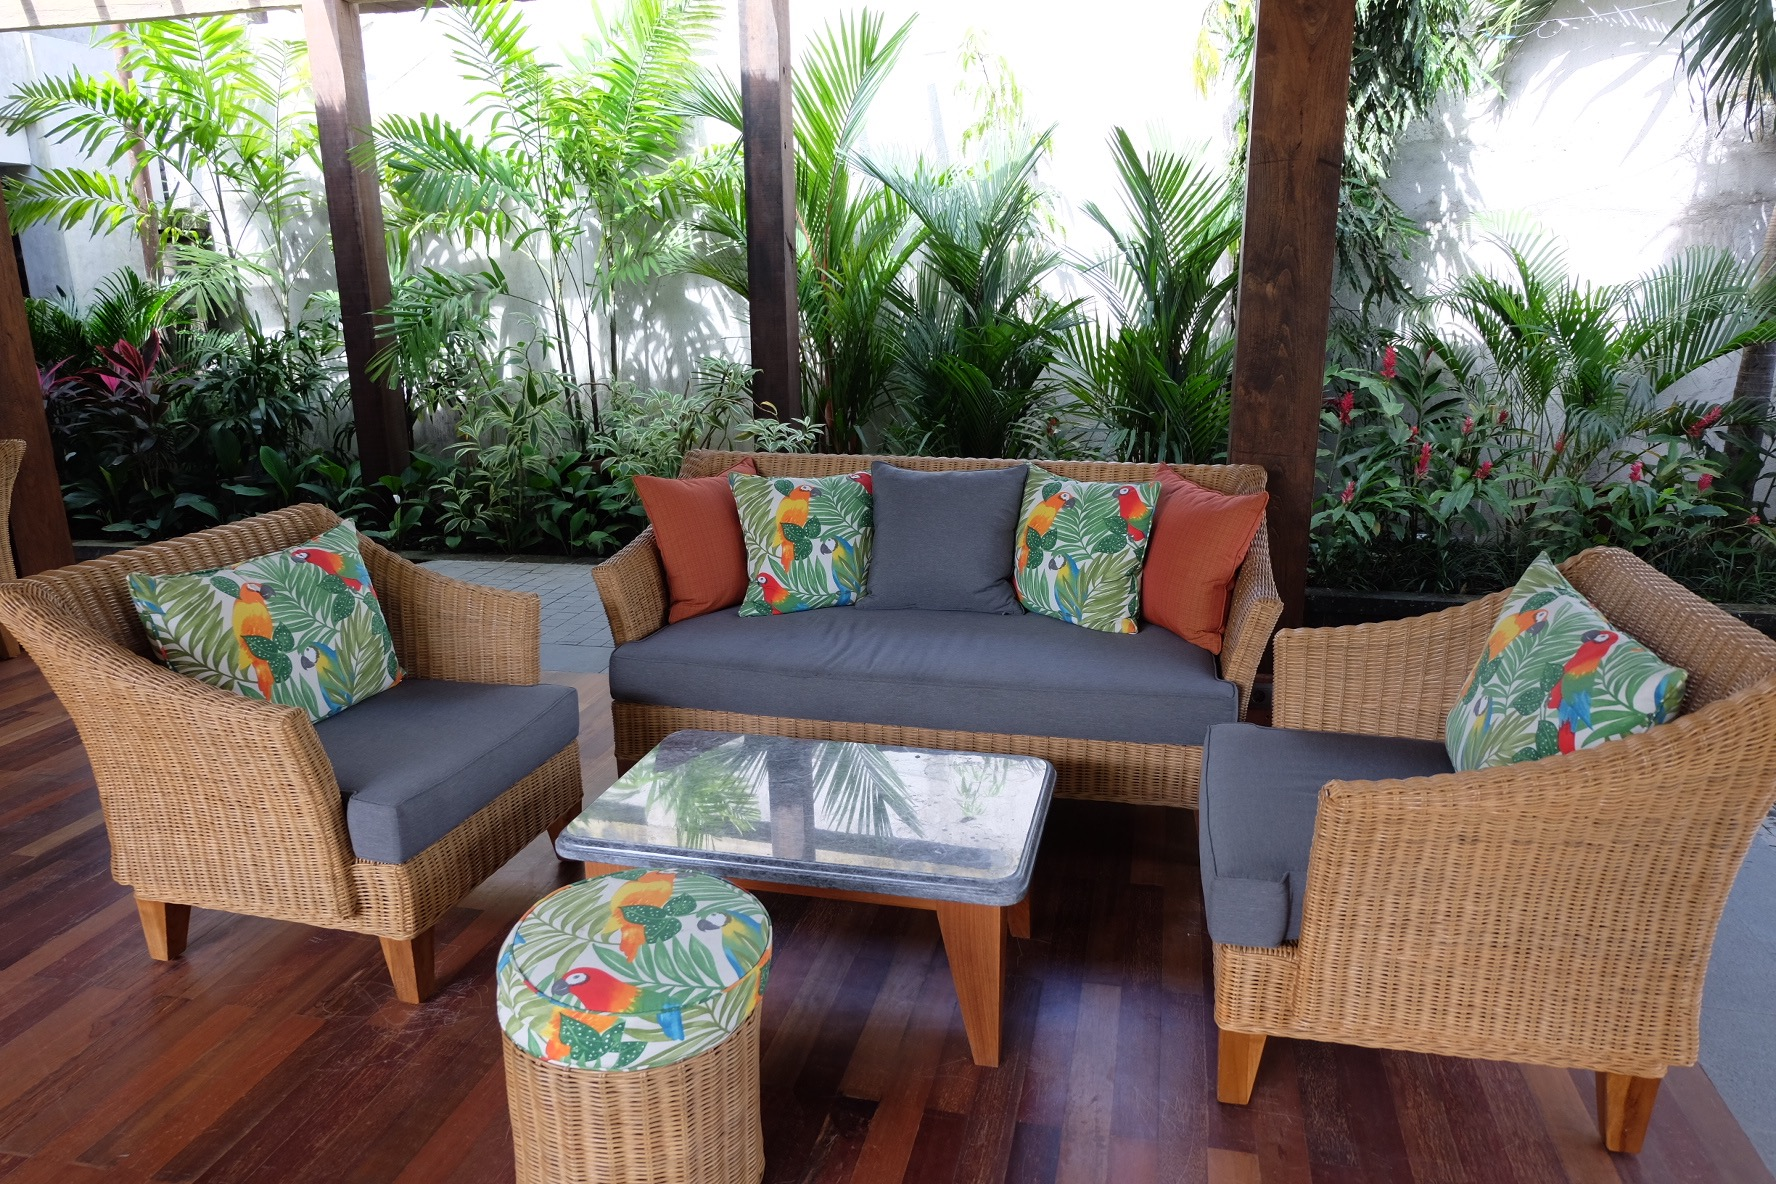 The open-air lobby area of the Alaya has lovely couches where you'll be served a welcome drink